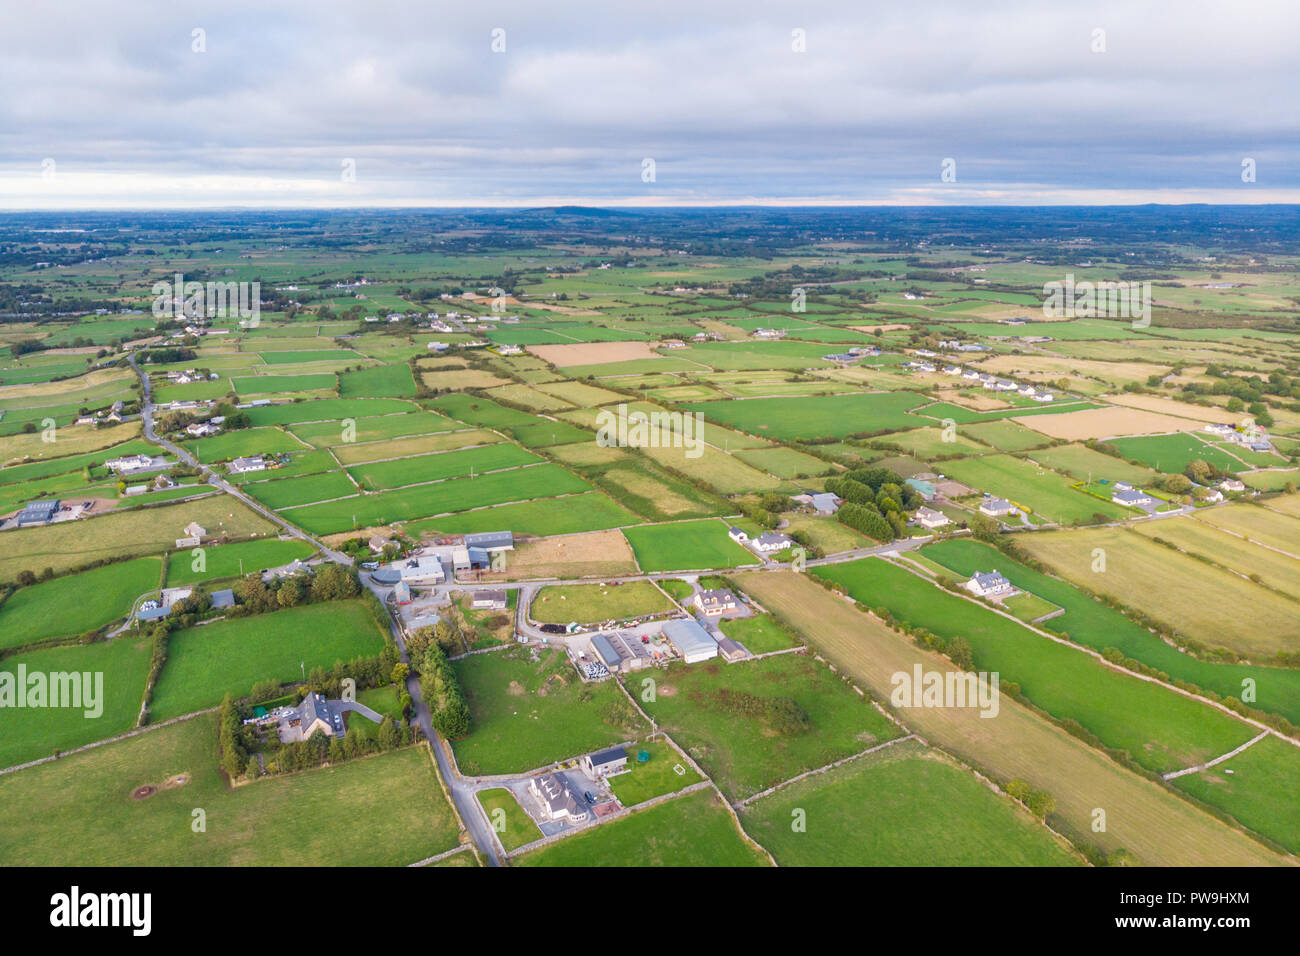 An aerial view of the Cloughanover countyside near Headford in County Galway, Ireland. Stock Photo